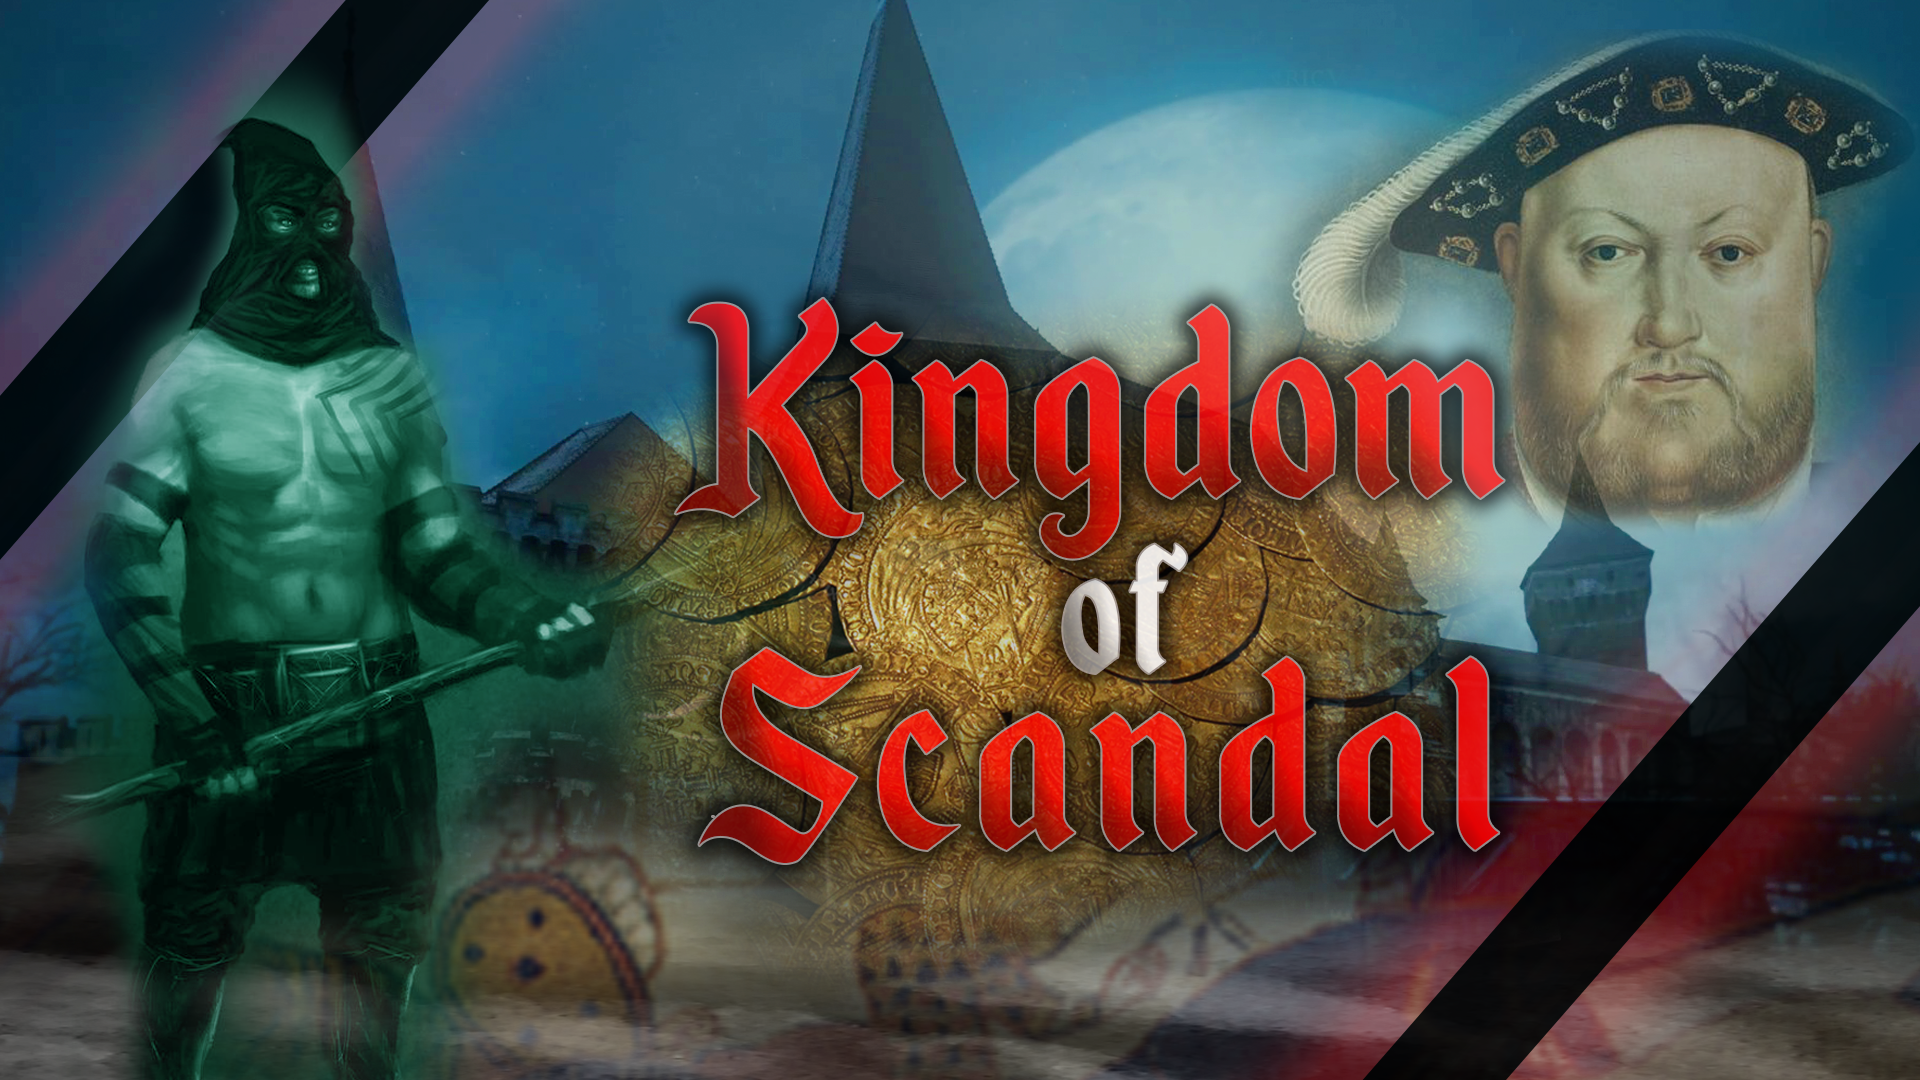 Kingdom of Scandal